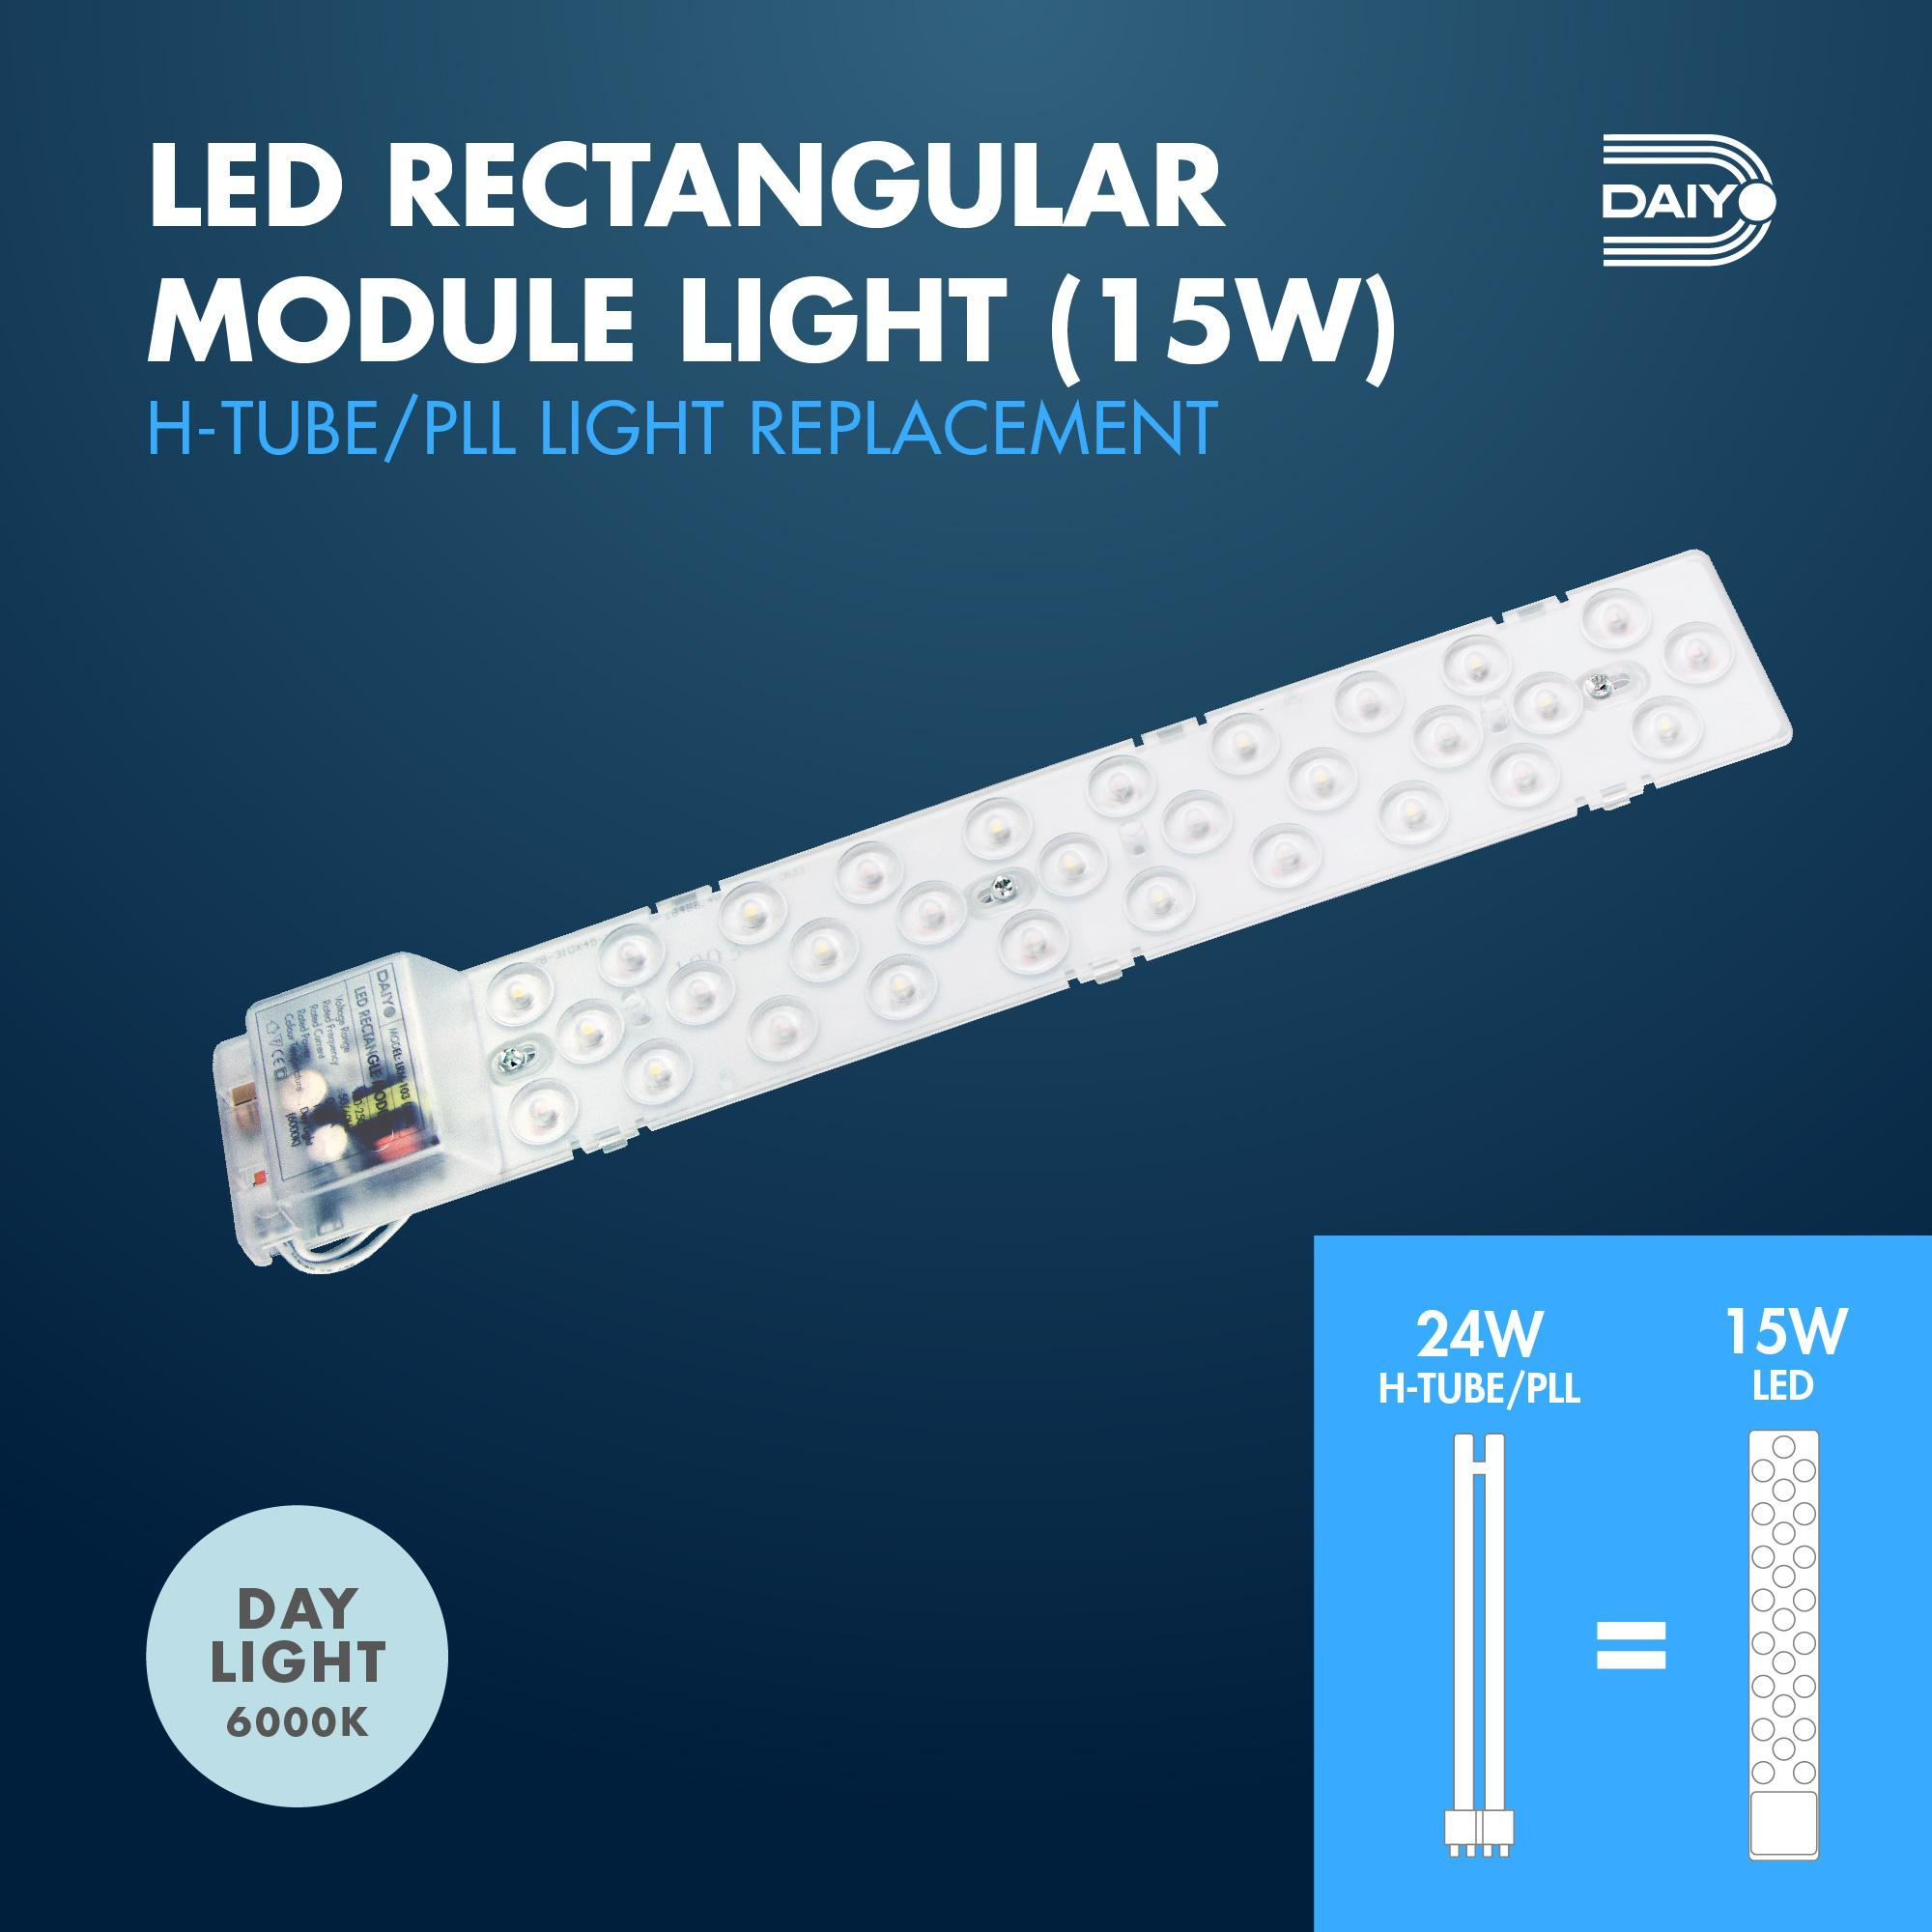 15W LED Rectangle Module Light (Day Light)